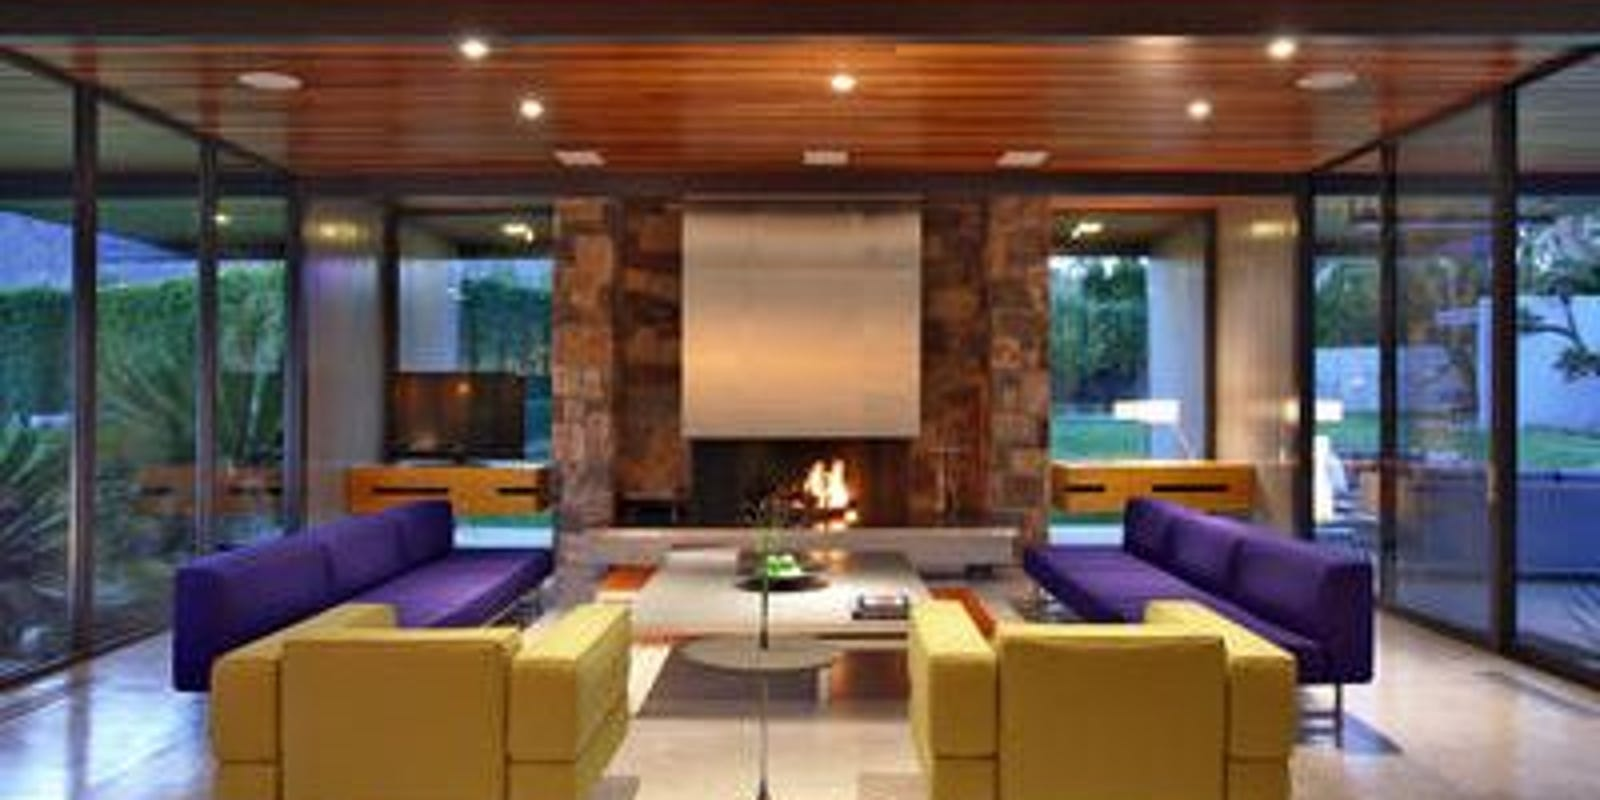 Montecito-living-room Top 25 Most Luxurious Rooms in the World